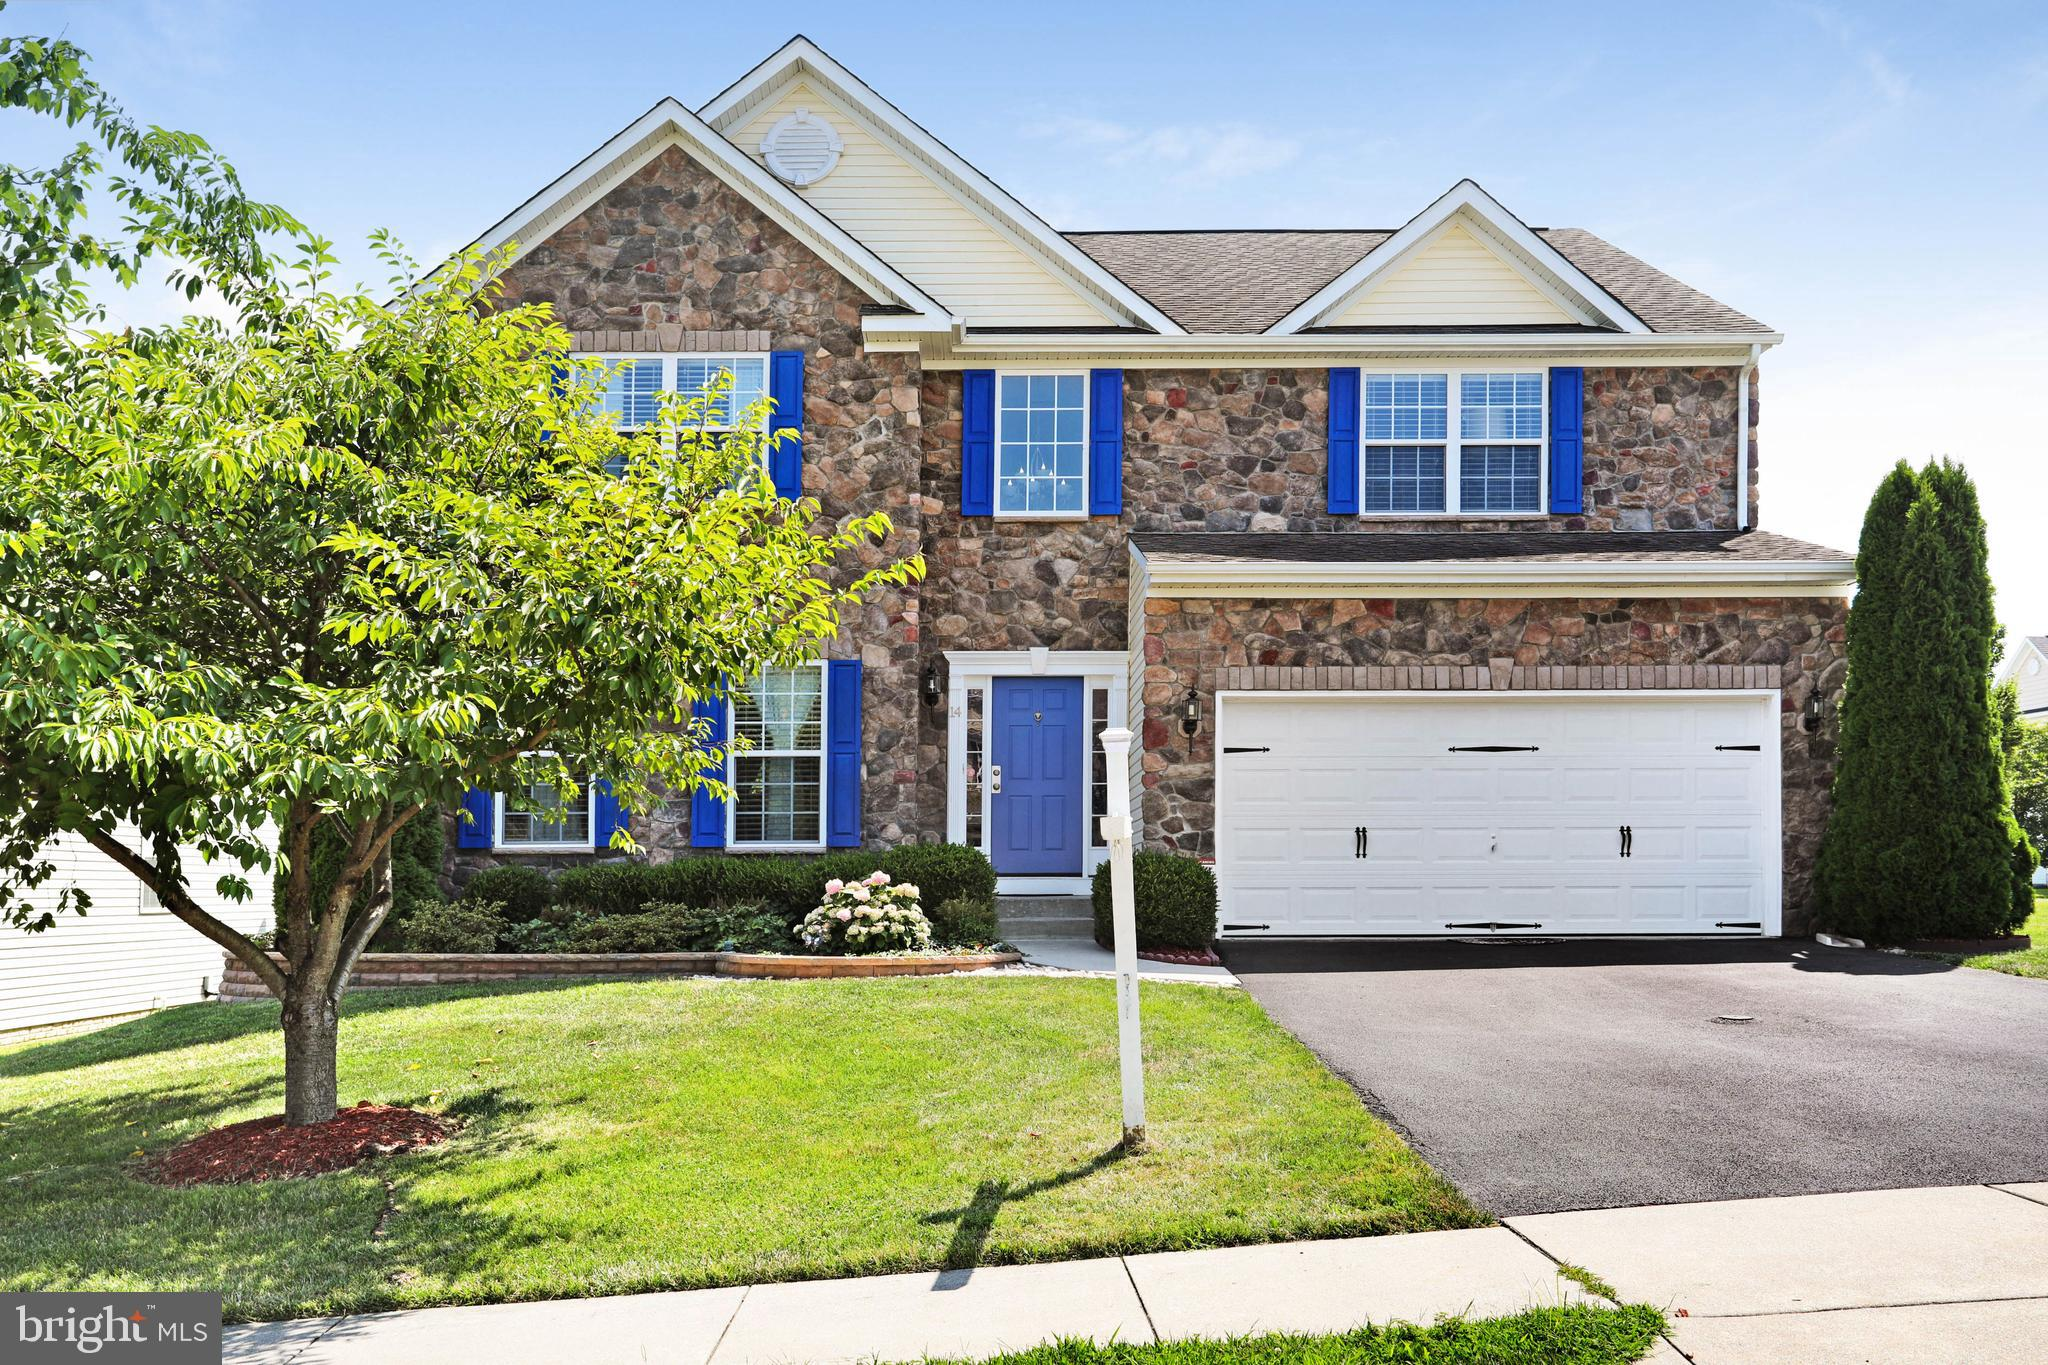 14 OVERBROOK ROAD, RANSON, WV 25438